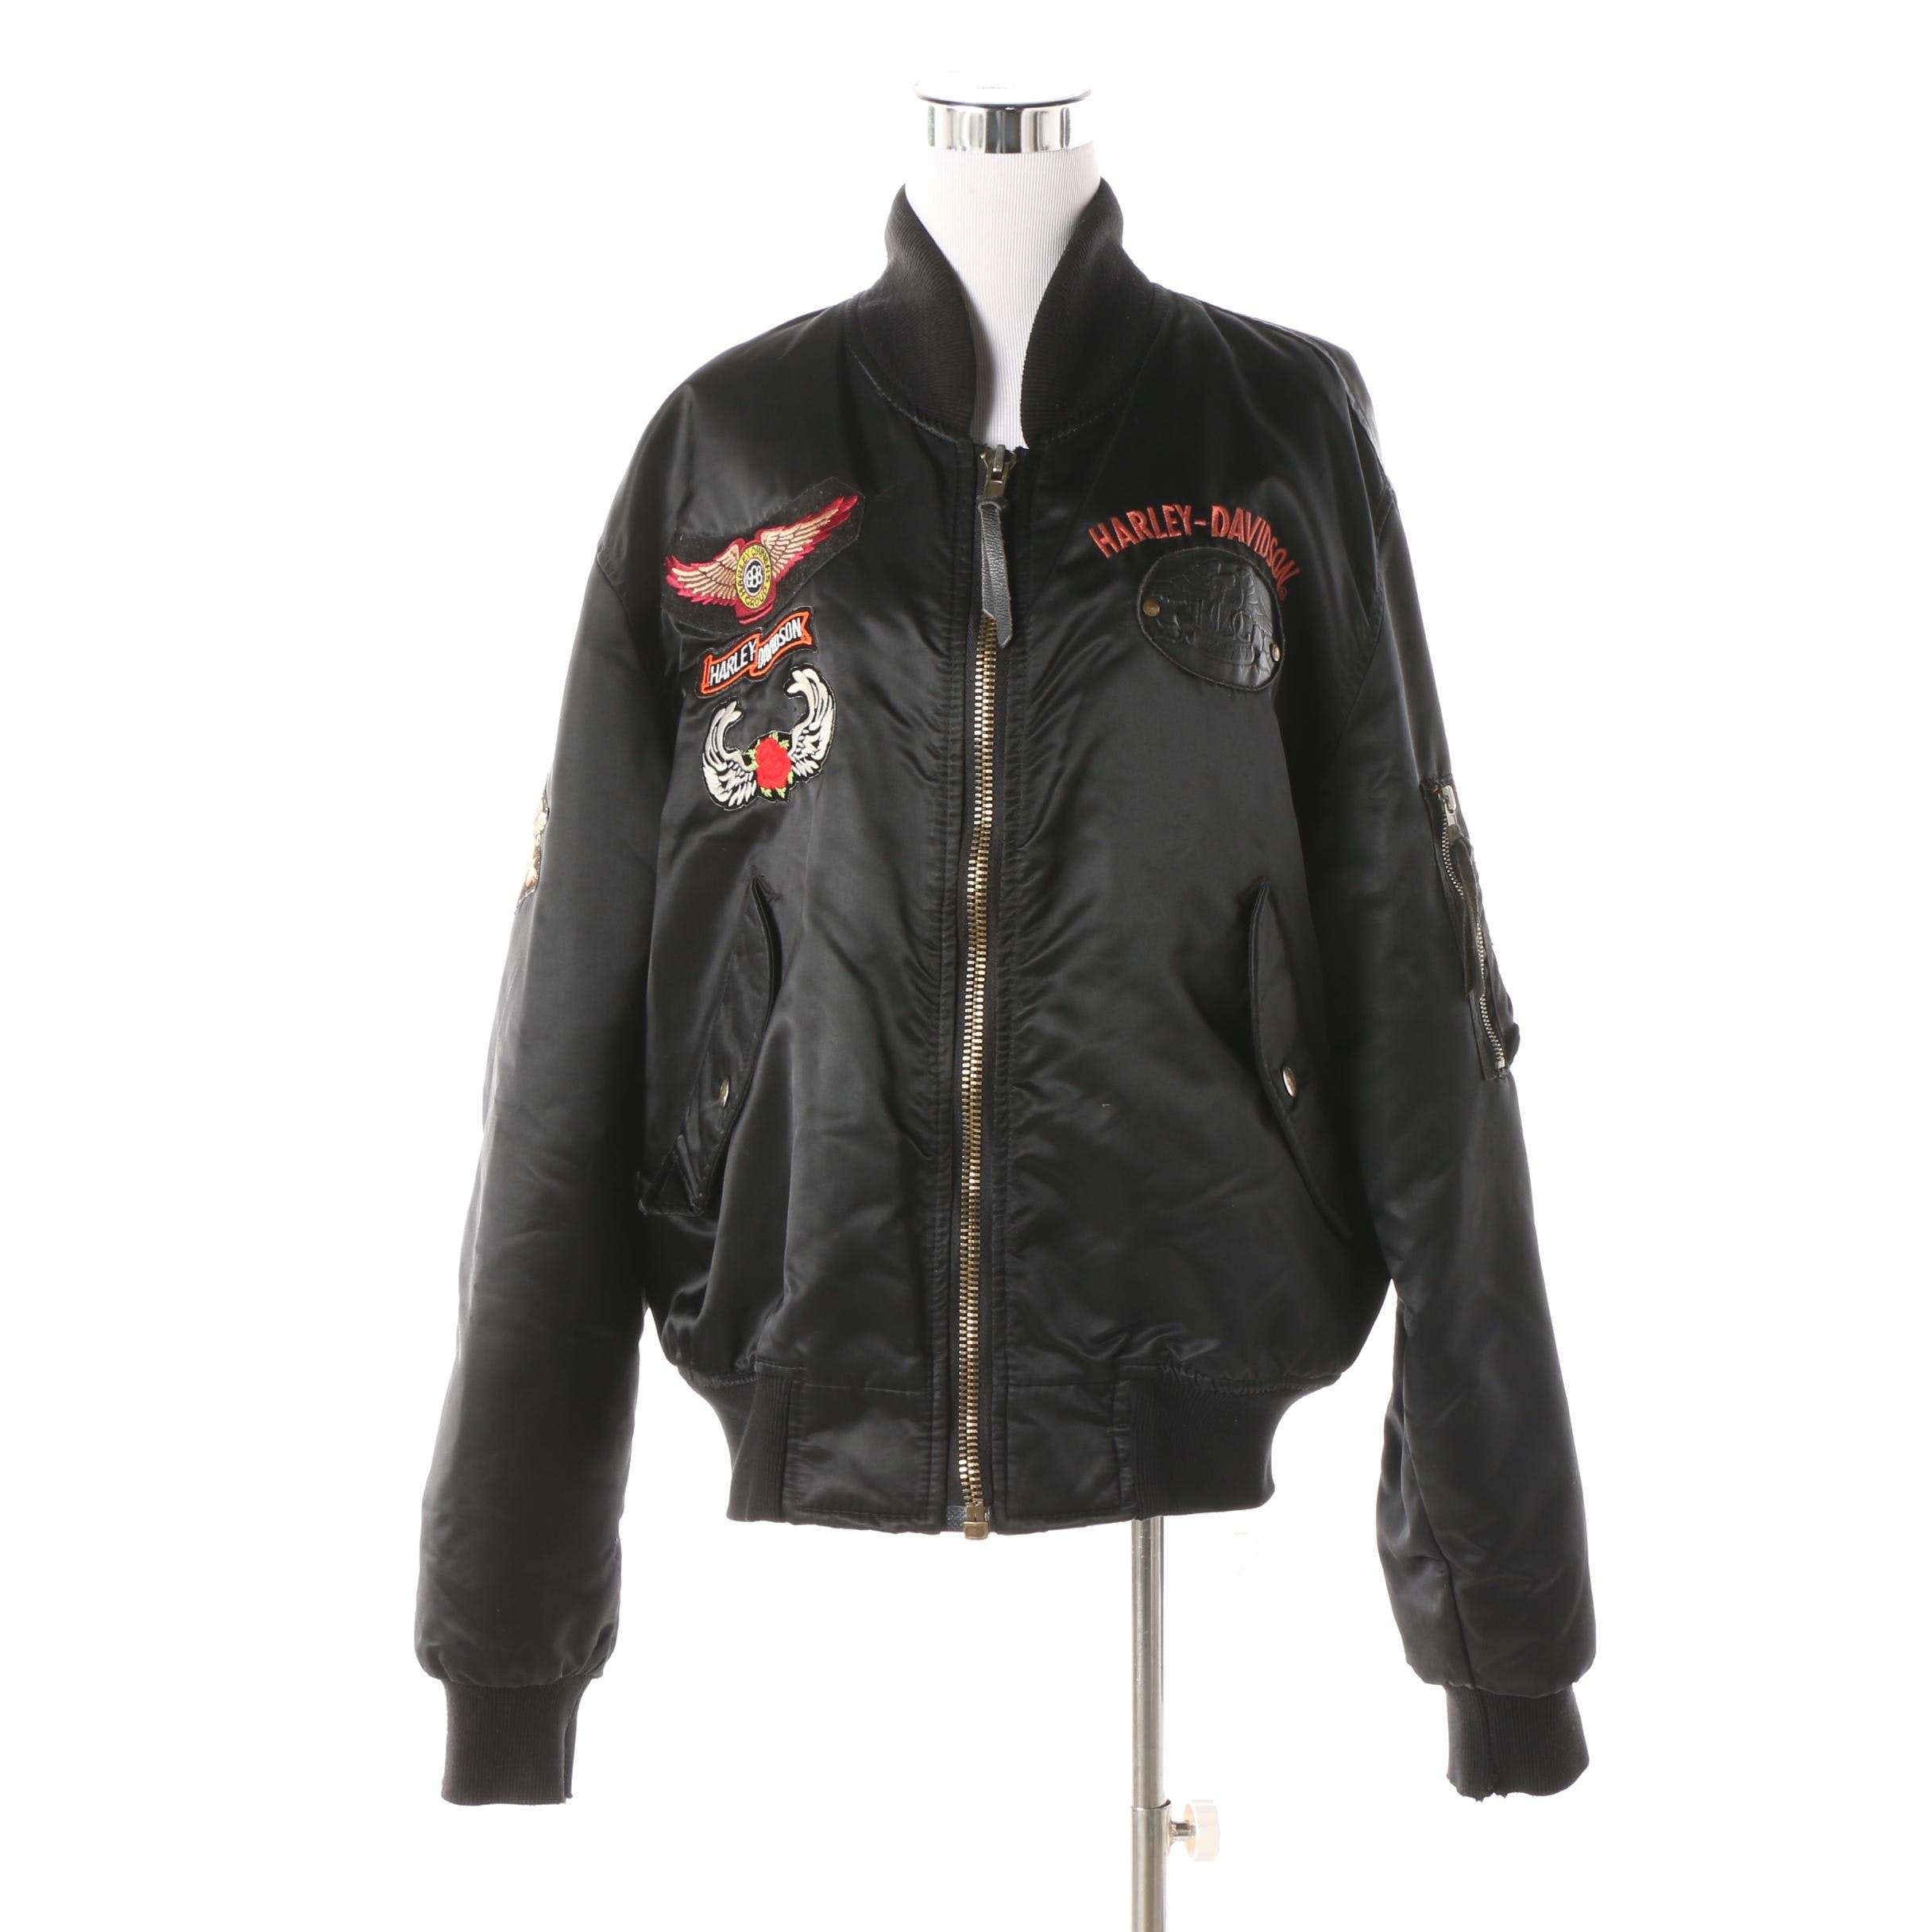 Men's Harley-Davidson Owners Group Nylon Bomber Jacket